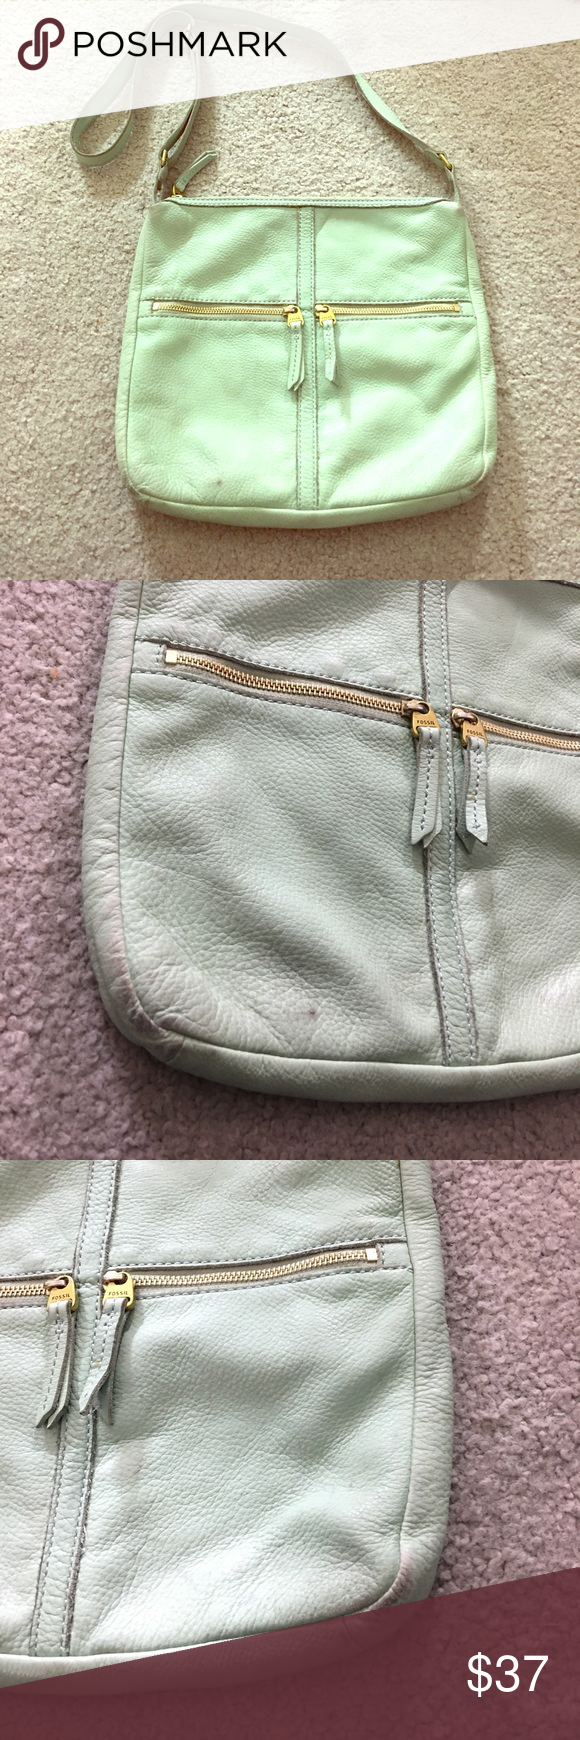 🗝 Fossil sea green med leather cross-body purse🗝 Fossil see green leather Crossbody messenger style bag see photos for details very cute has a place for ID and or phone as well as inside the pocket and two zipper pockets on the outside adjustable strap very cute great for spring and summer or even fall non-smoking home fast delivery at an excellent price get it today Fossil Bags Crossbody Bags